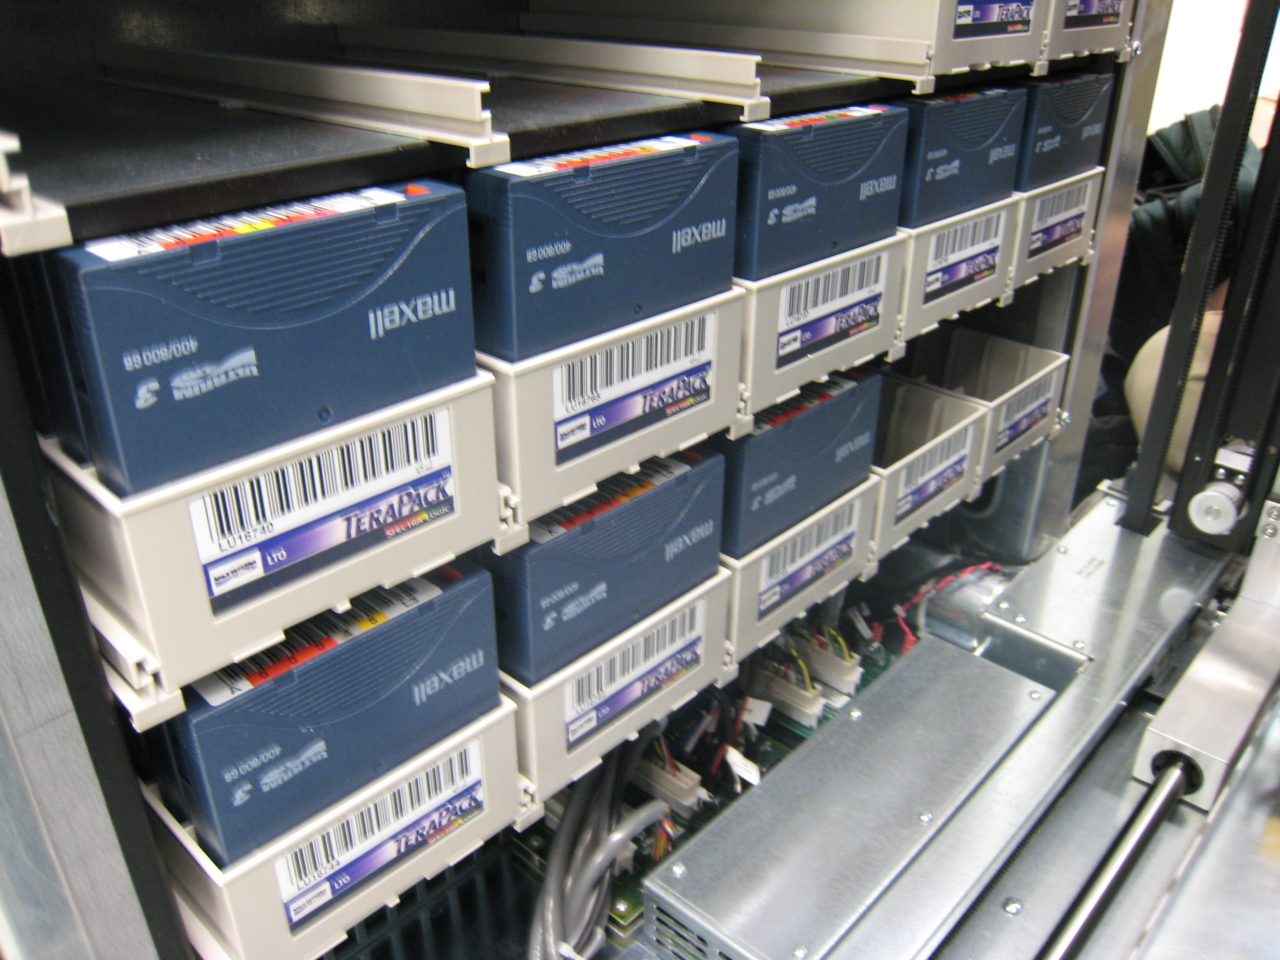 Inside a (Spectra Logic) T950 library by ChrisDag (cc) (from Flickr)